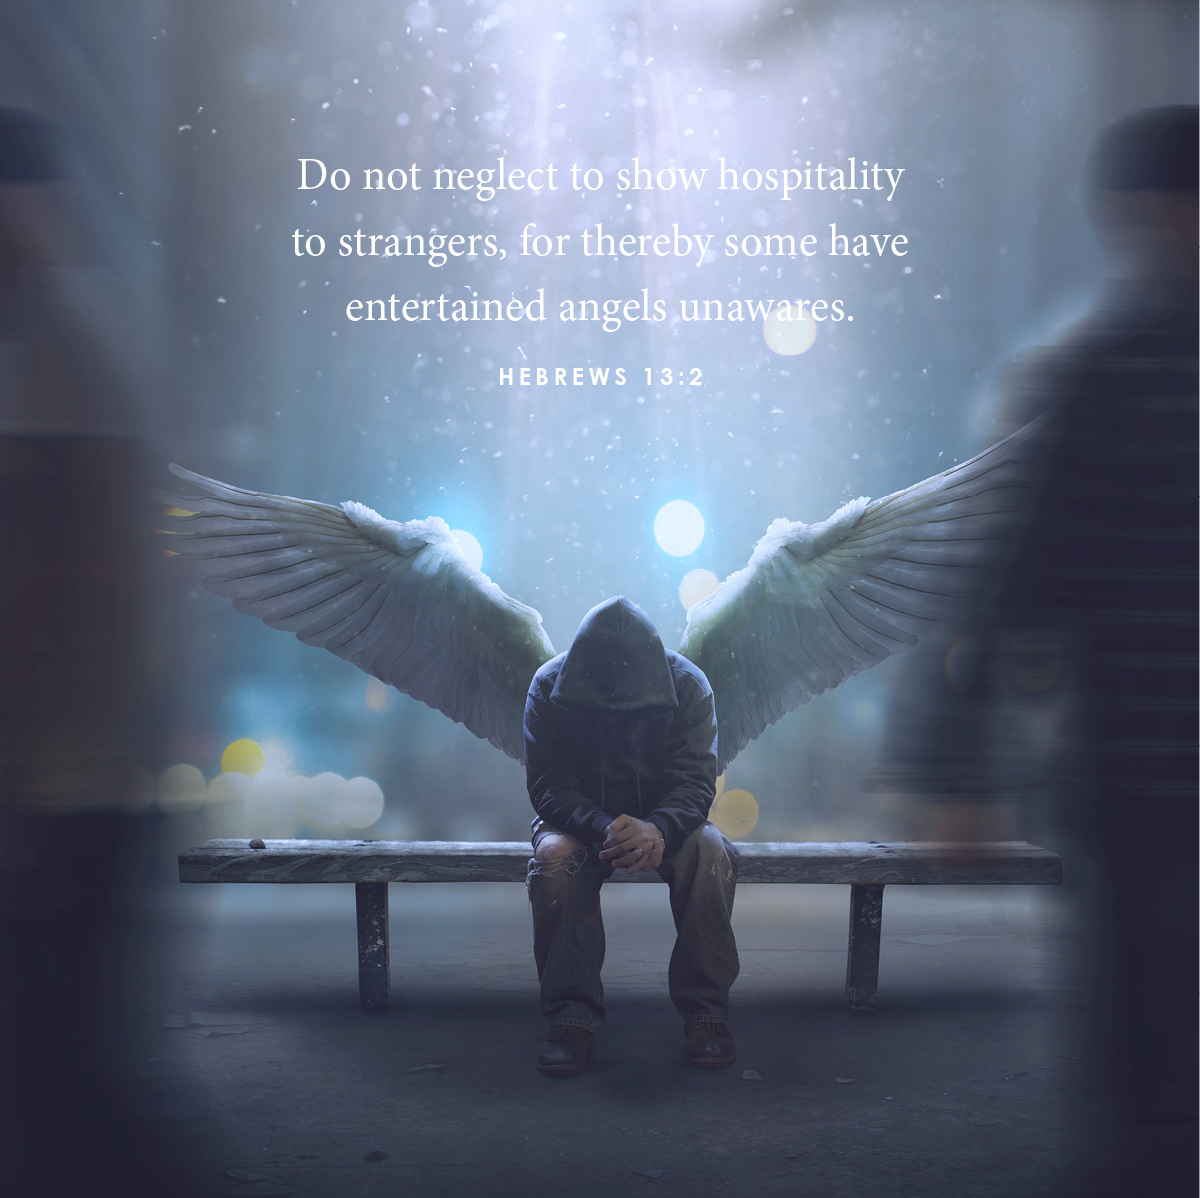 Do not neglect to show hospitality to strangers for thereby some have entertained angels unawares